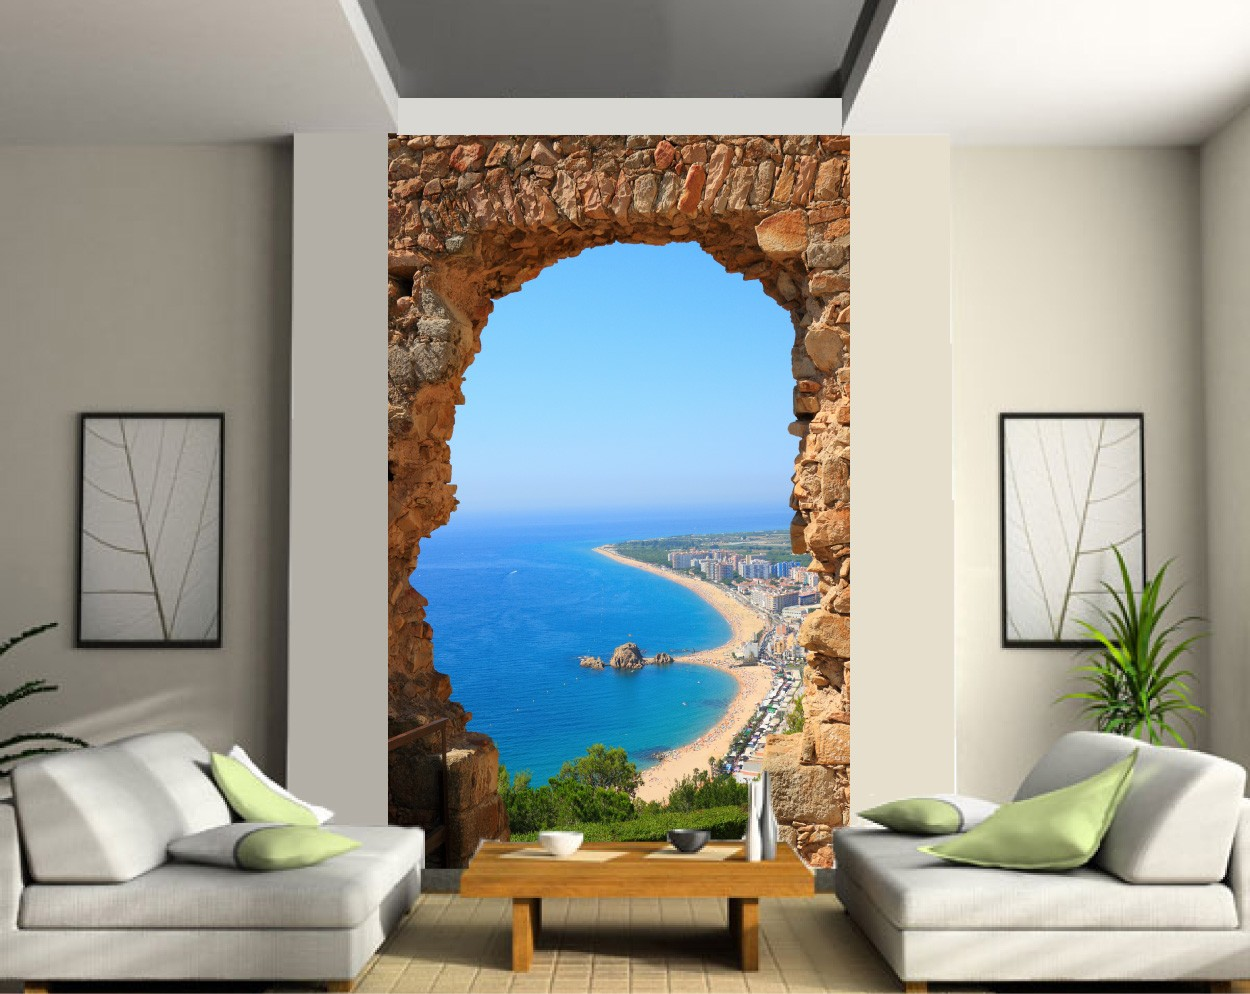 poster mural trompe oeil latest poster mural trompe oeil with poster mural trompe oeil. Black Bedroom Furniture Sets. Home Design Ideas